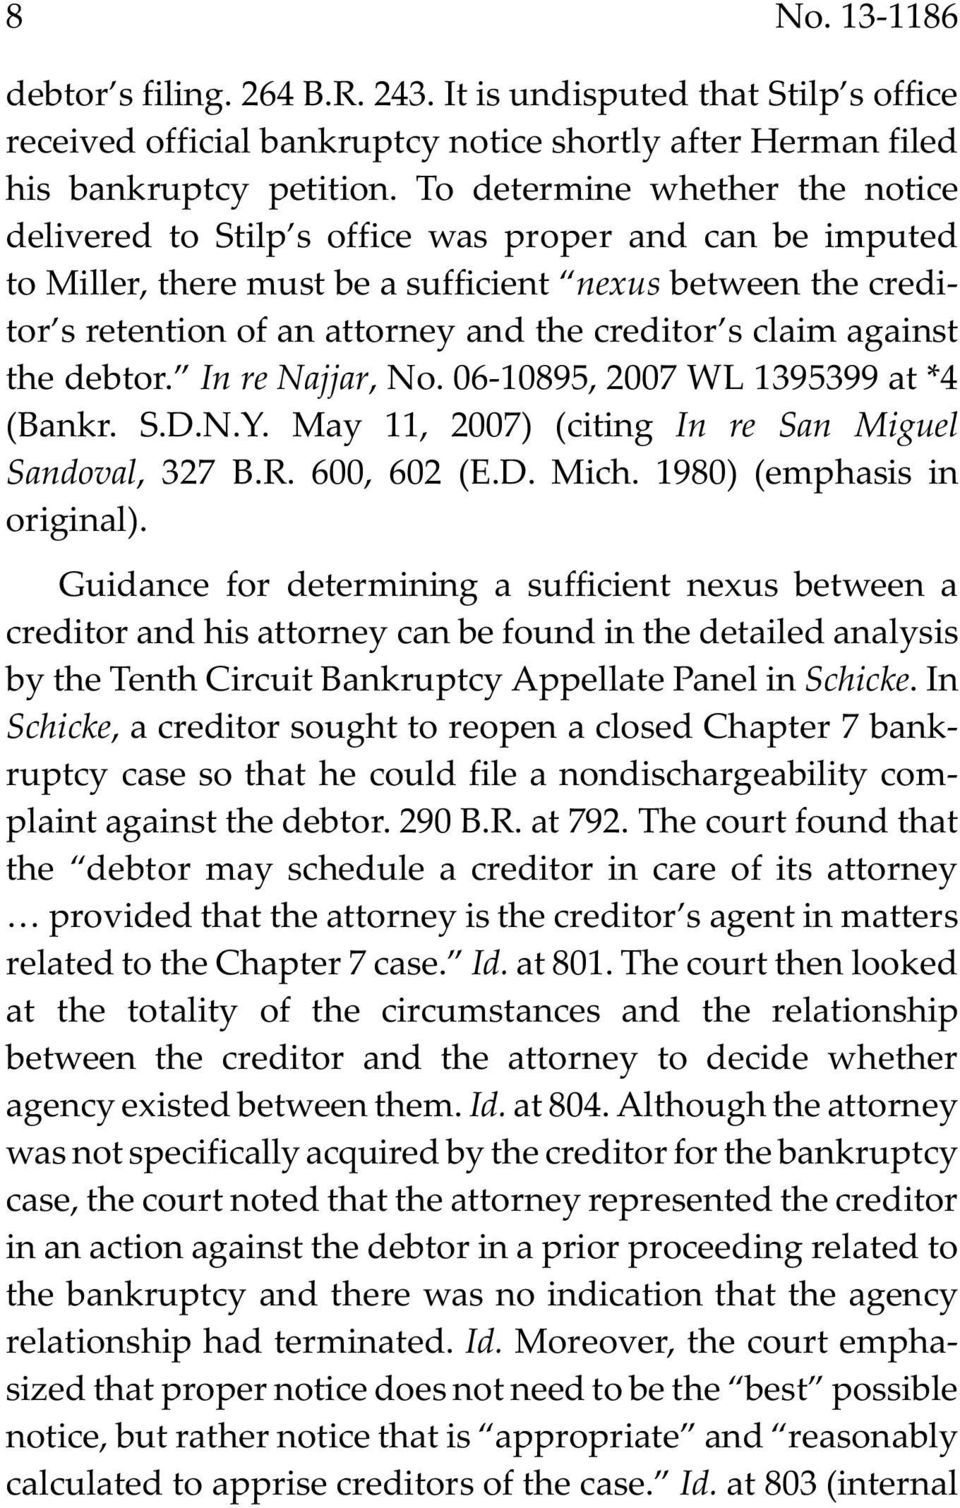 s claim against the debtor. In re Najjar, No. 06-10895, 2007 WL 1395399 at *4 (Bankr. S.D.N.Y. May 11, 2007) (citing In re San Miguel Sandoval, 327 B.R. 600, 602 (E.D. Mich.